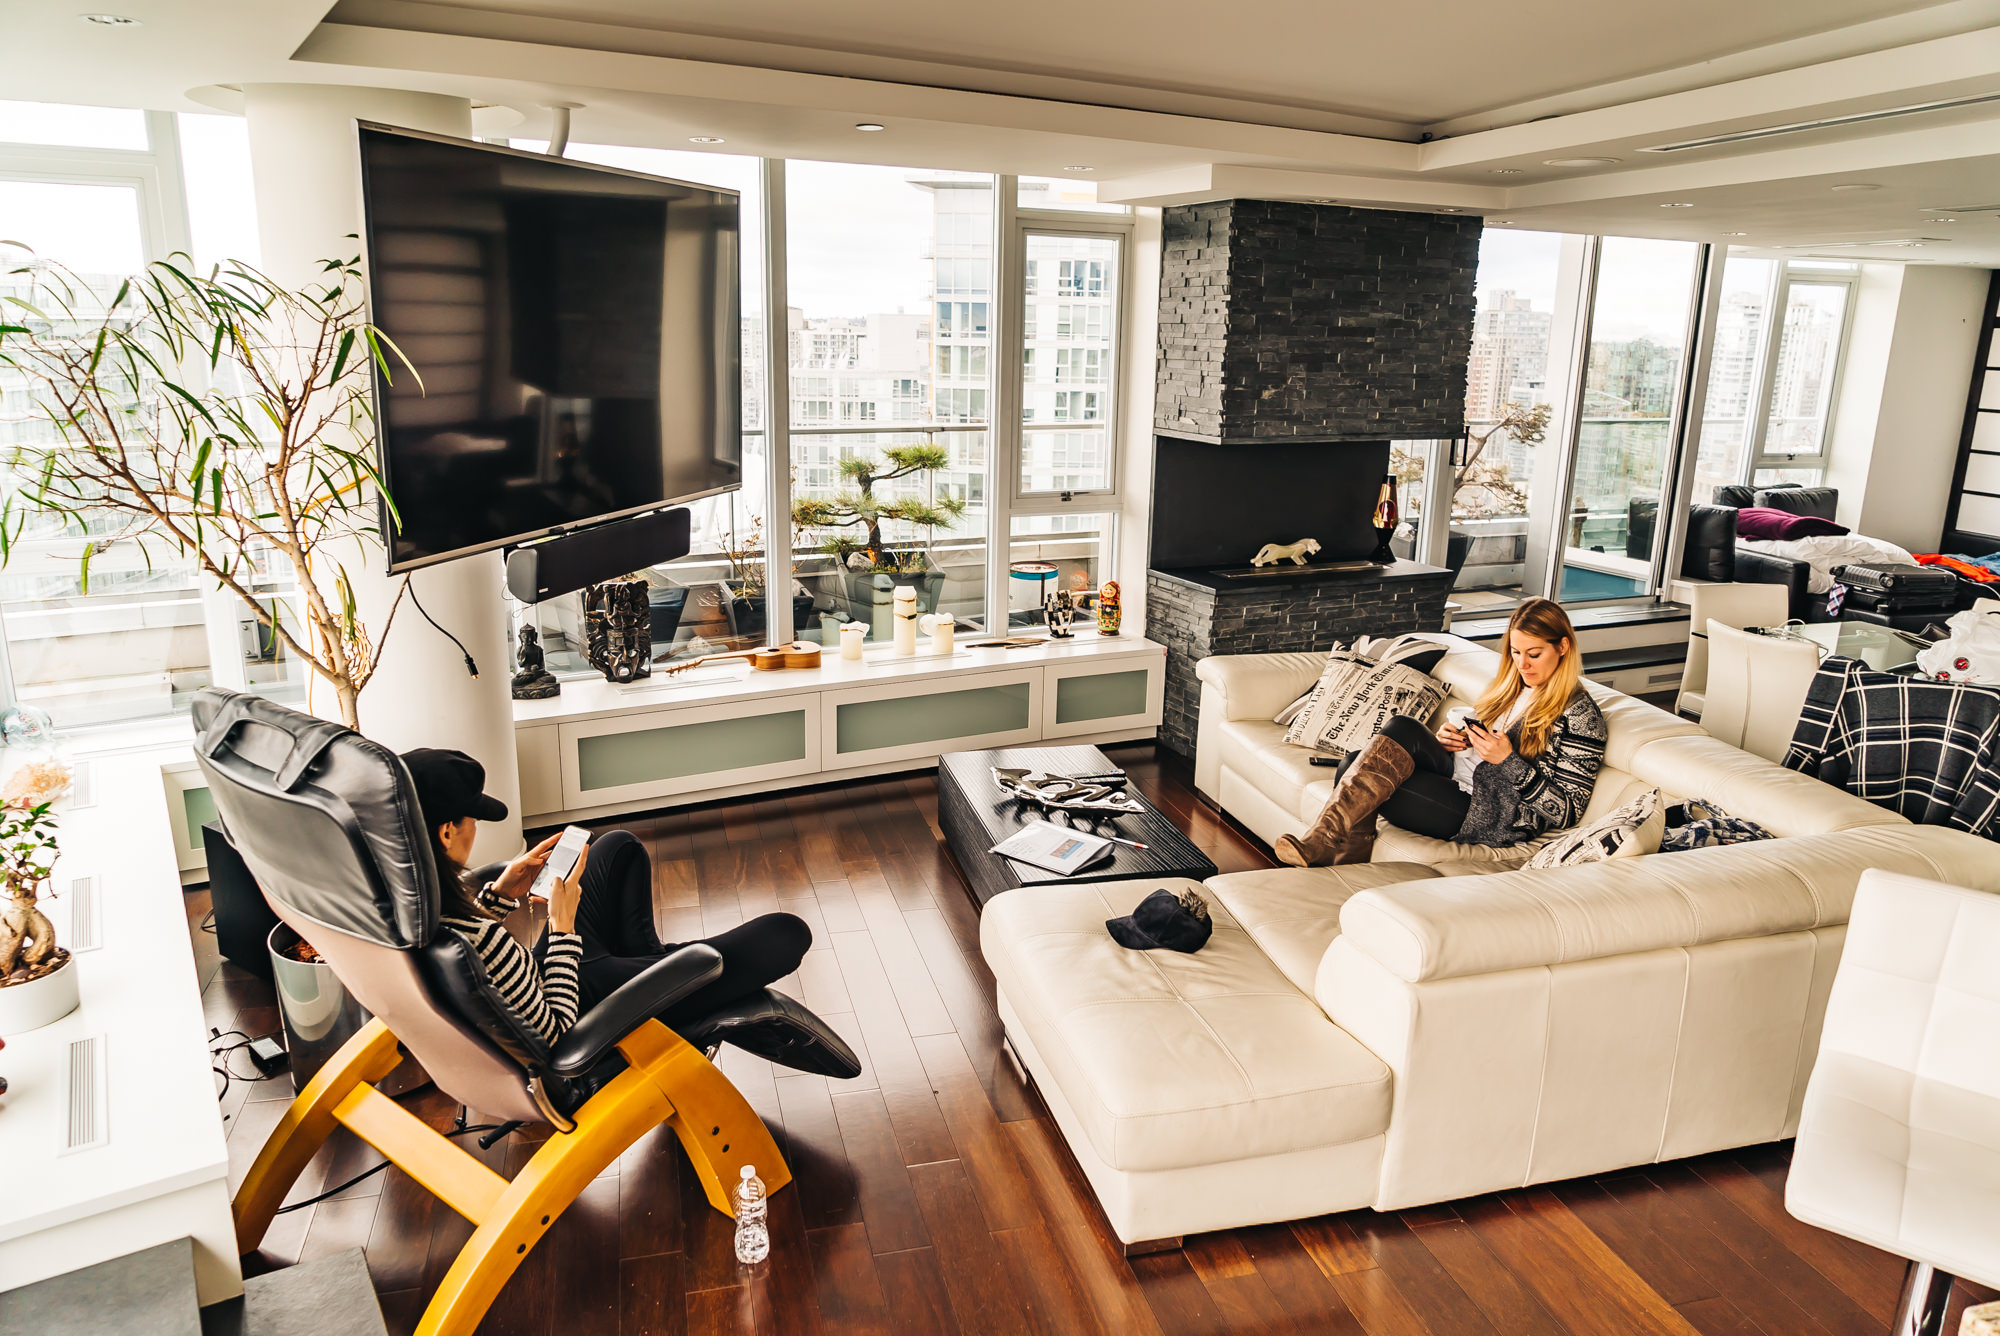 The spacious living room at the Airbnb penthouse